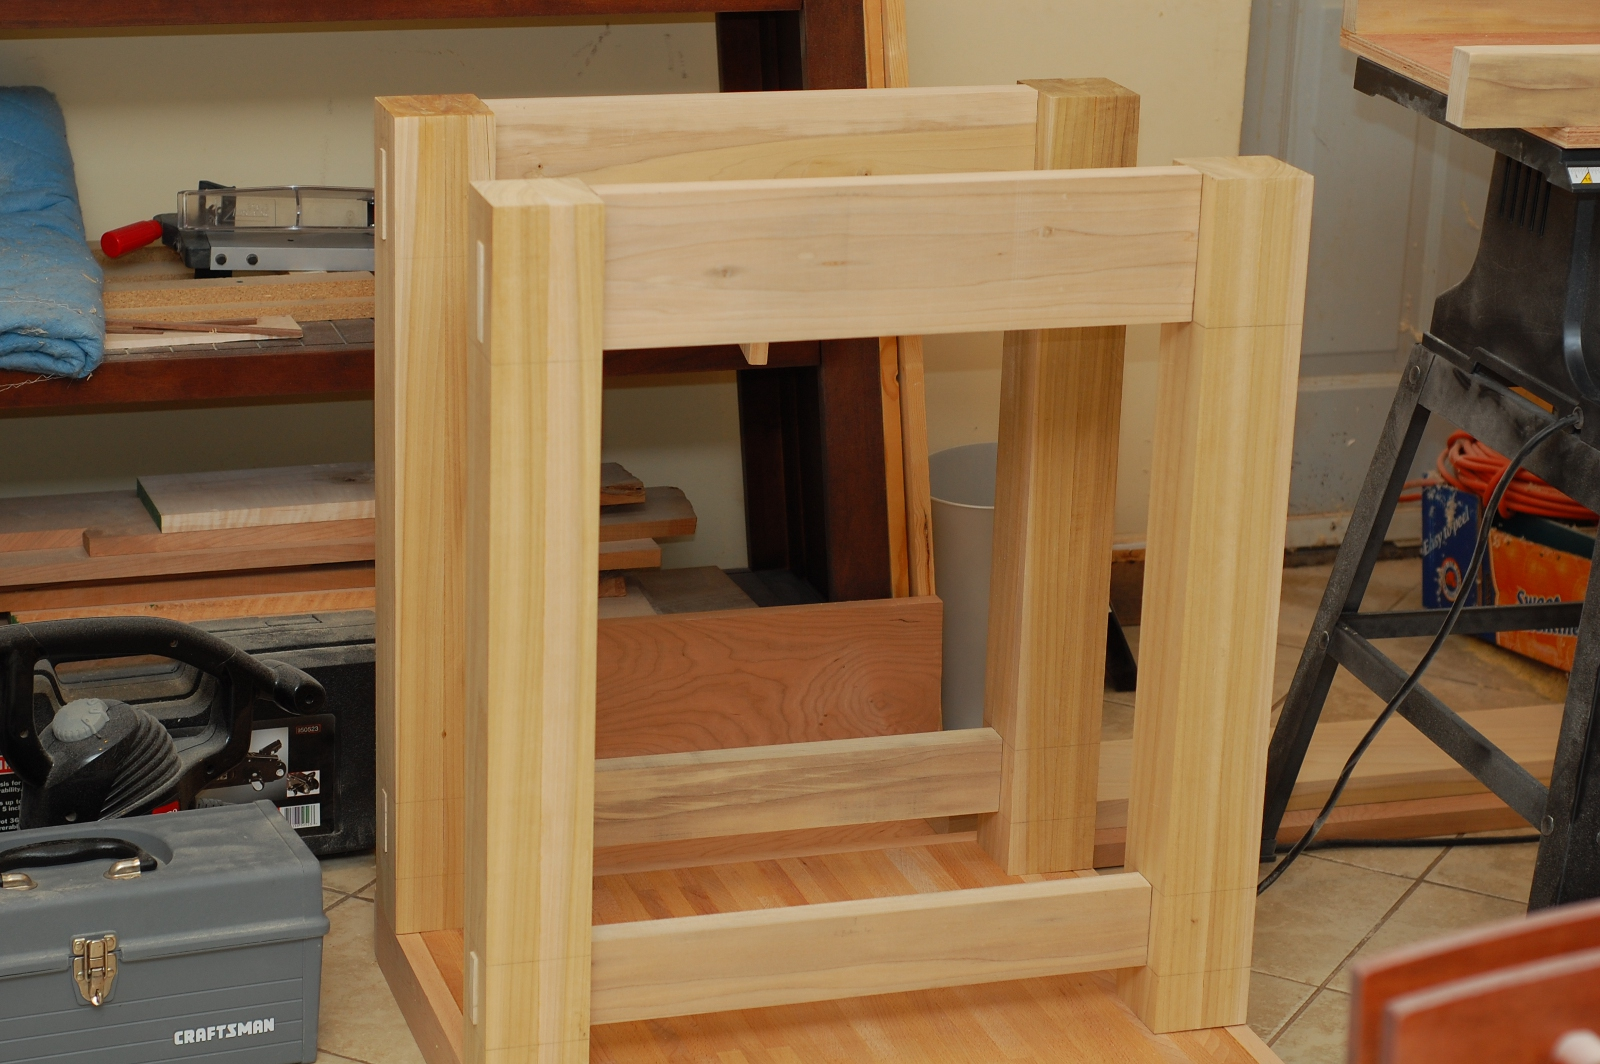 Work Bench Legs | Sawhorse Legs for Table | Workbench Kits